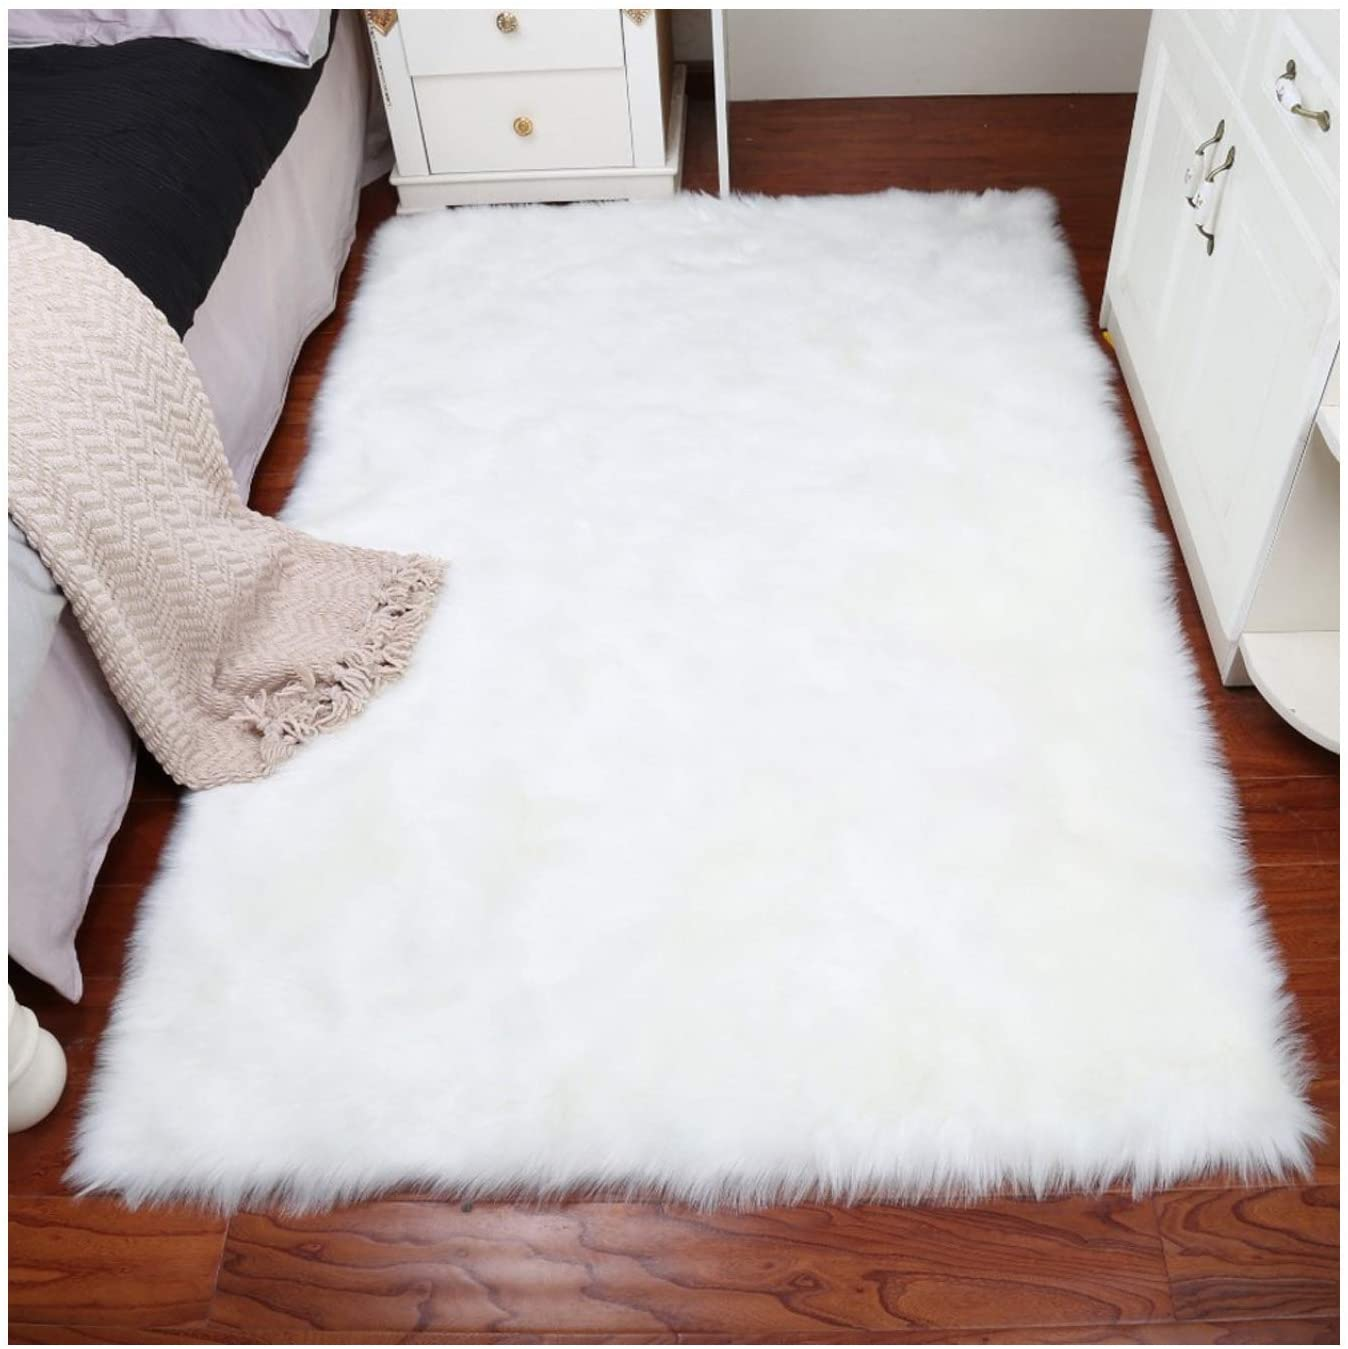 Home Decor Rectangle Rugs Faux Fur Sheepskin Area Rug Shaggy Carpet Fluffy Rug for Baby Bedroom,2ftx3ft,White